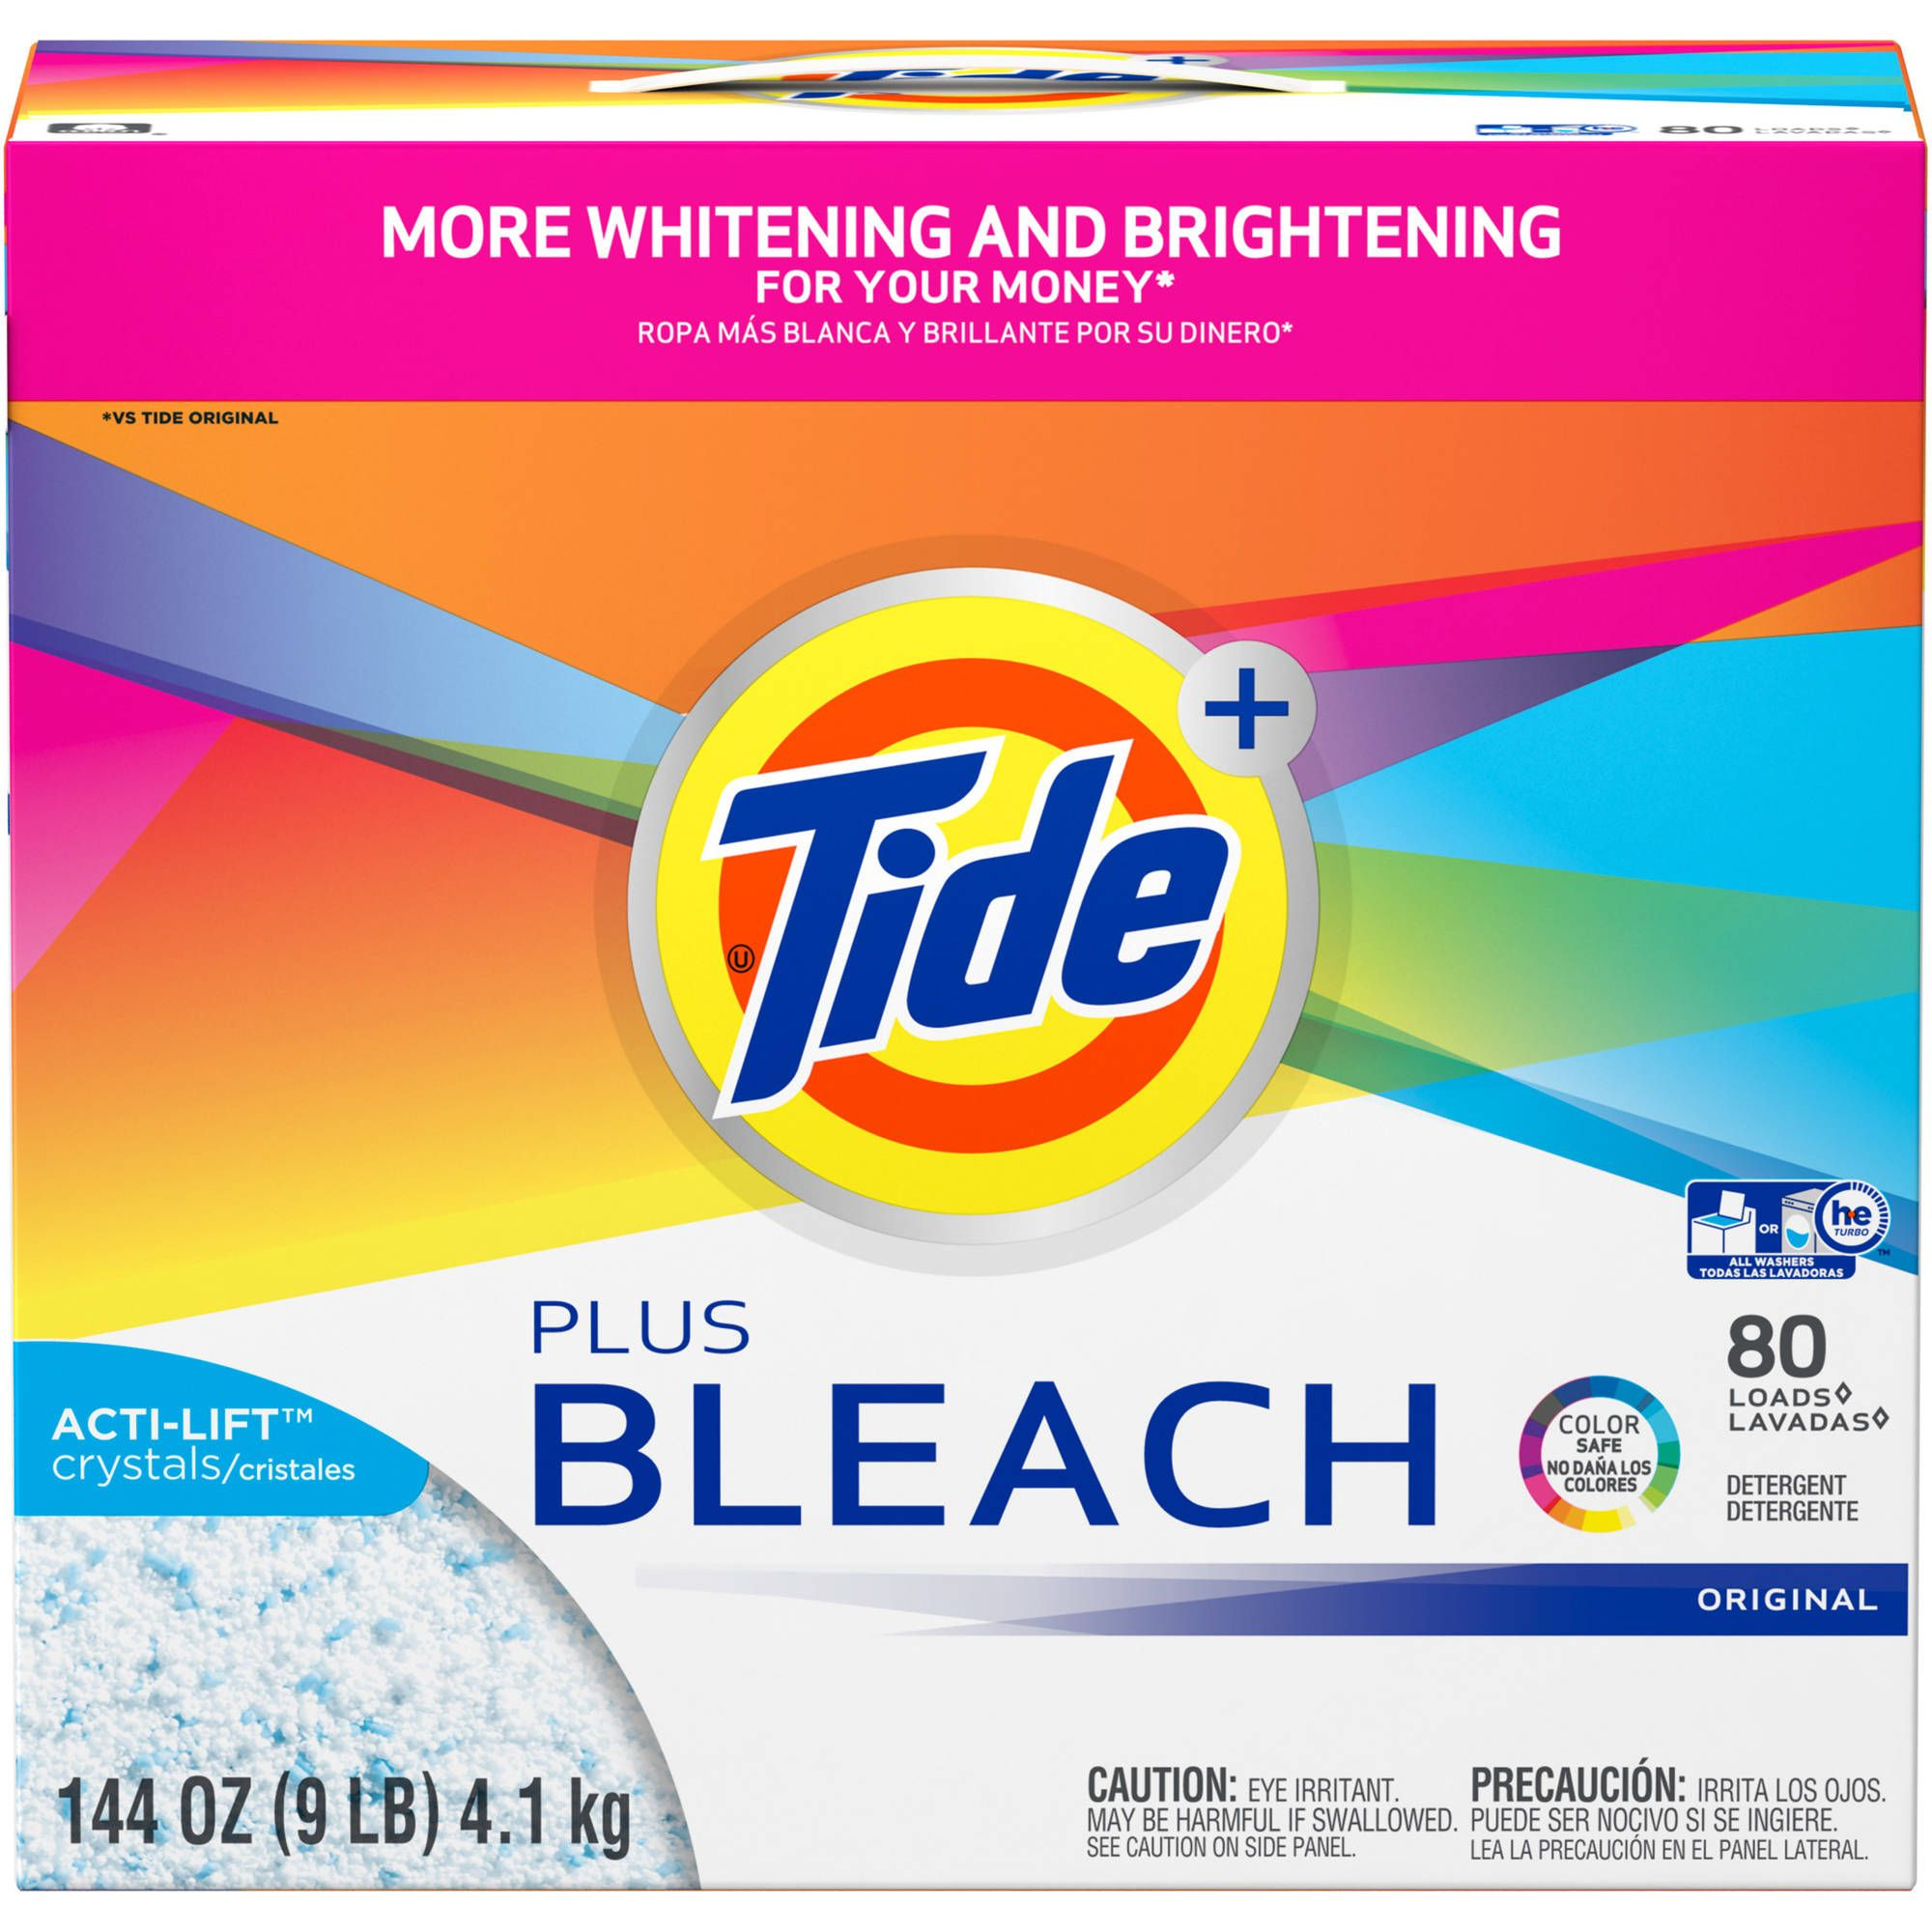 High Efficiency Laundry Soap Walmart Com Powder Laundry